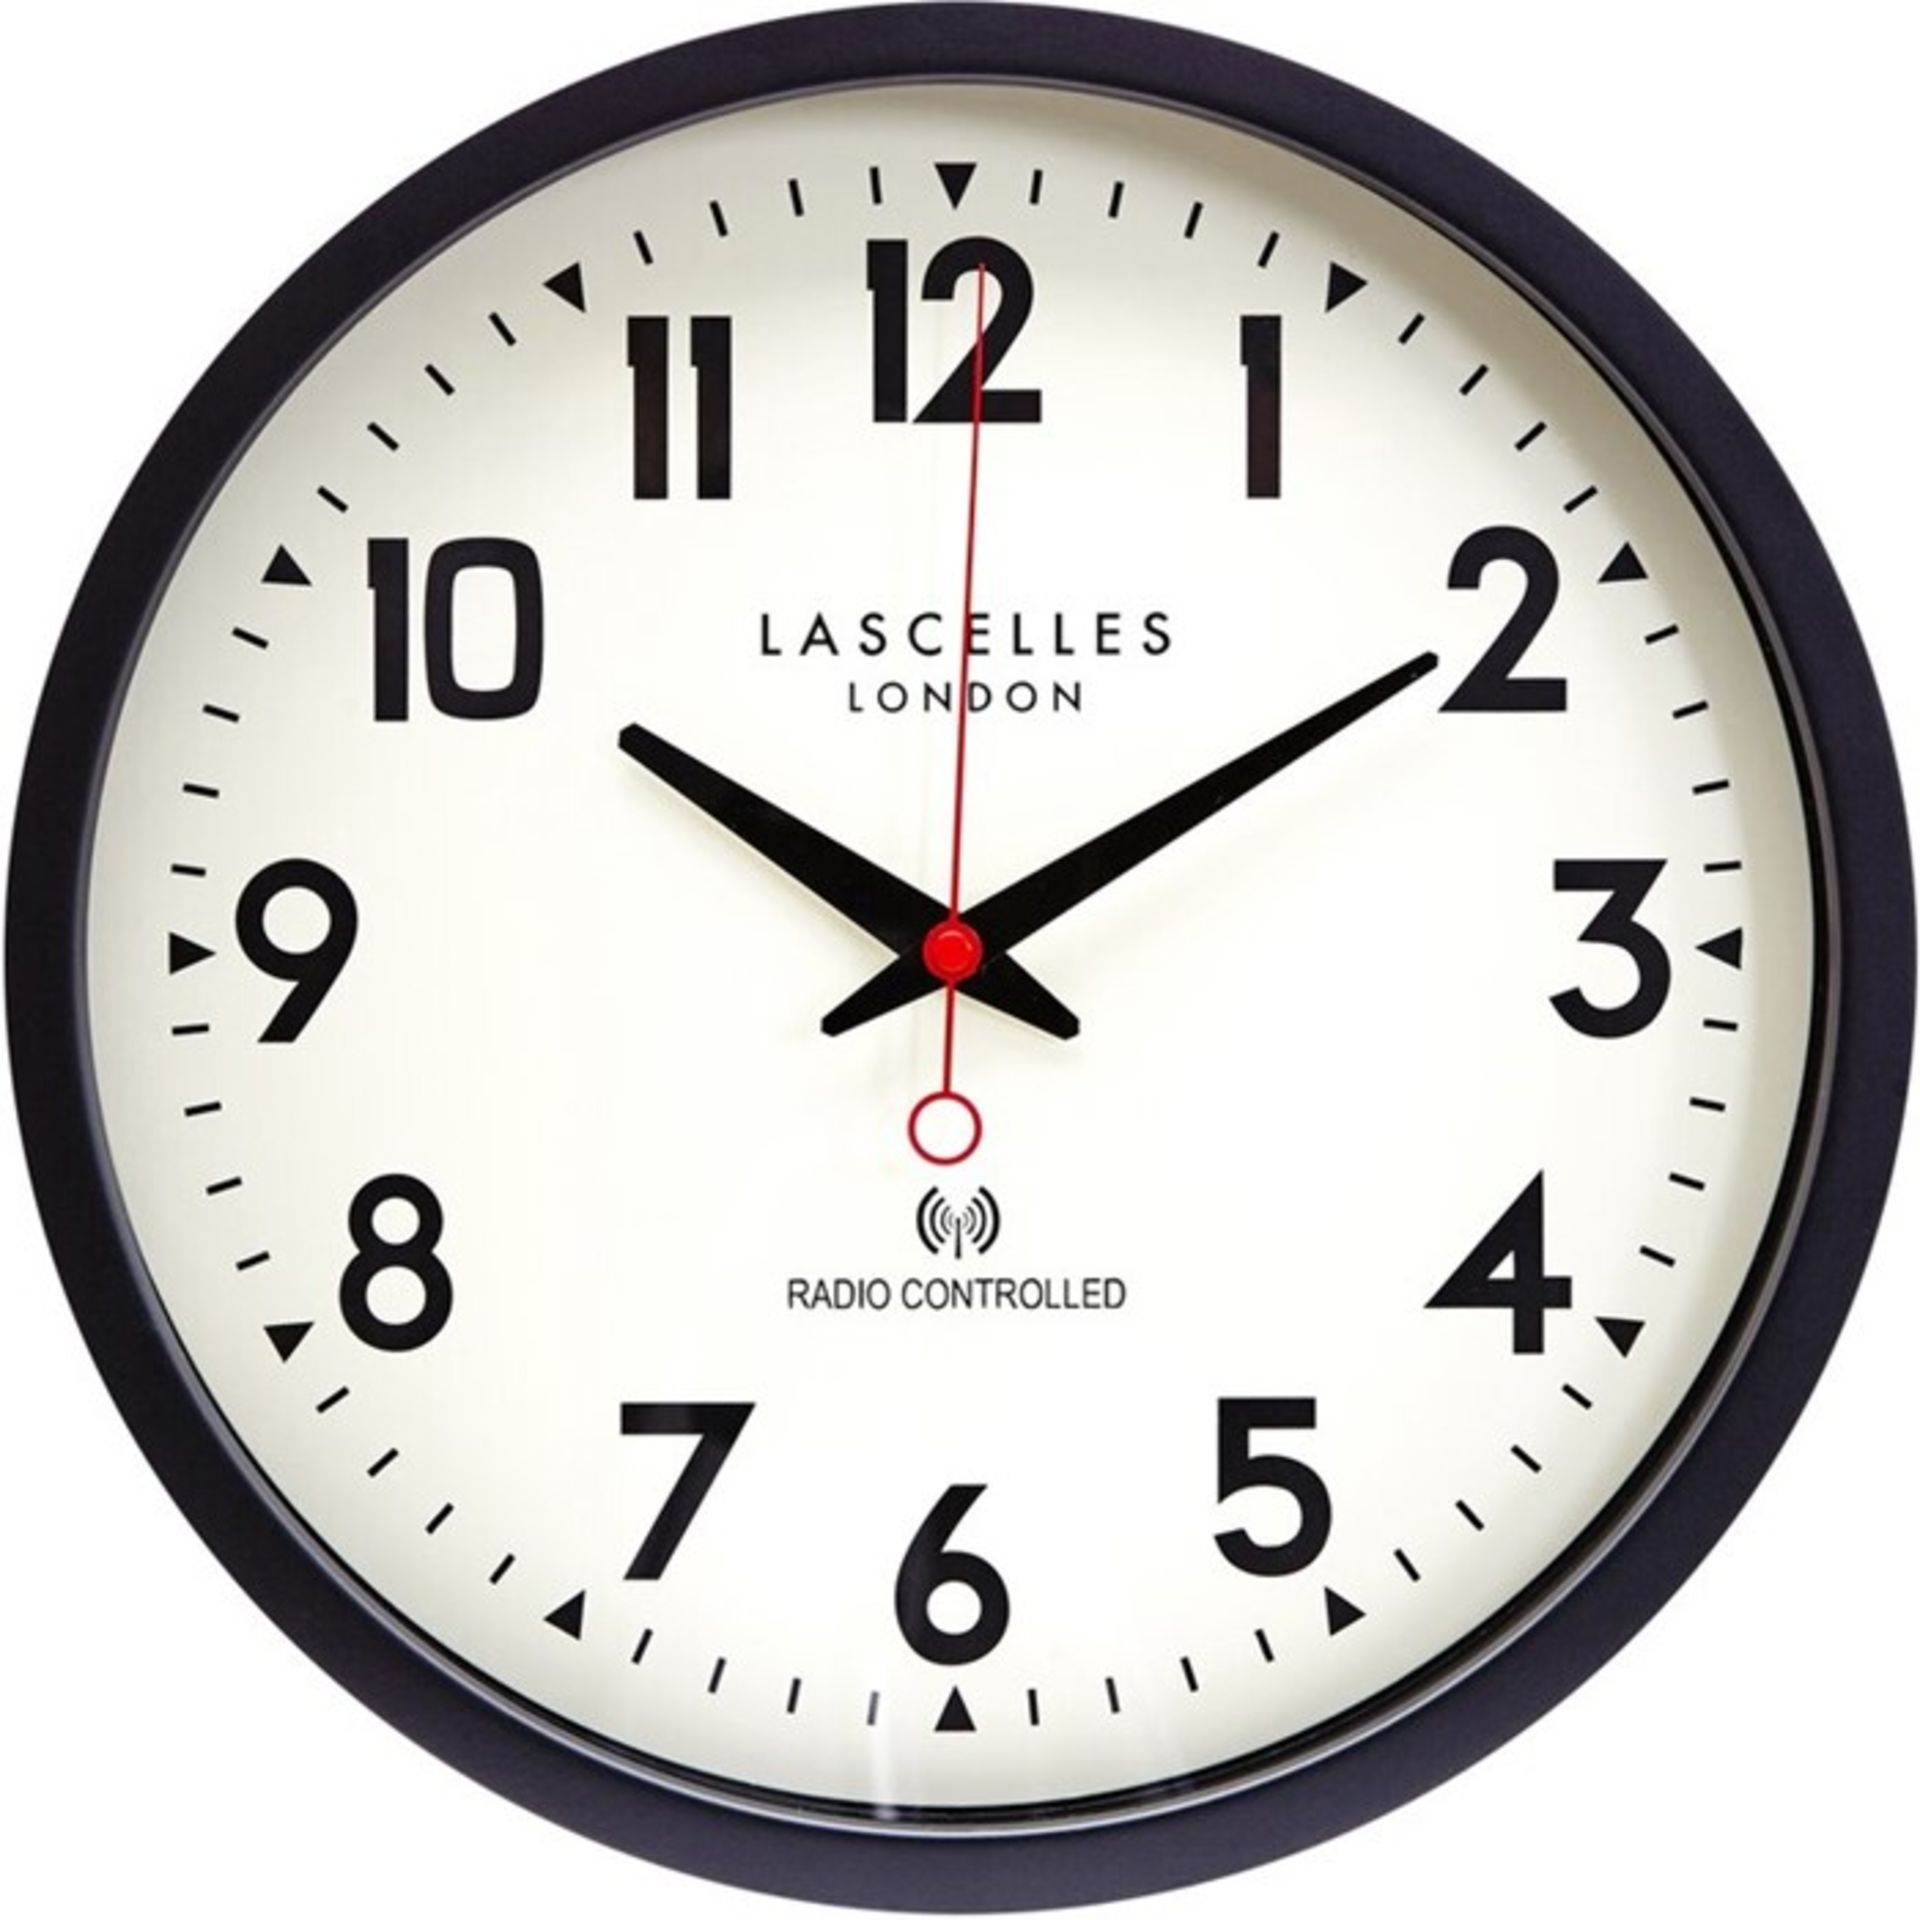 Roger Lascelles Clocks, Radio Controlled Wall Clock (BLACK) - RRP£55.99 (RLS1226 - 21458/36) 1F